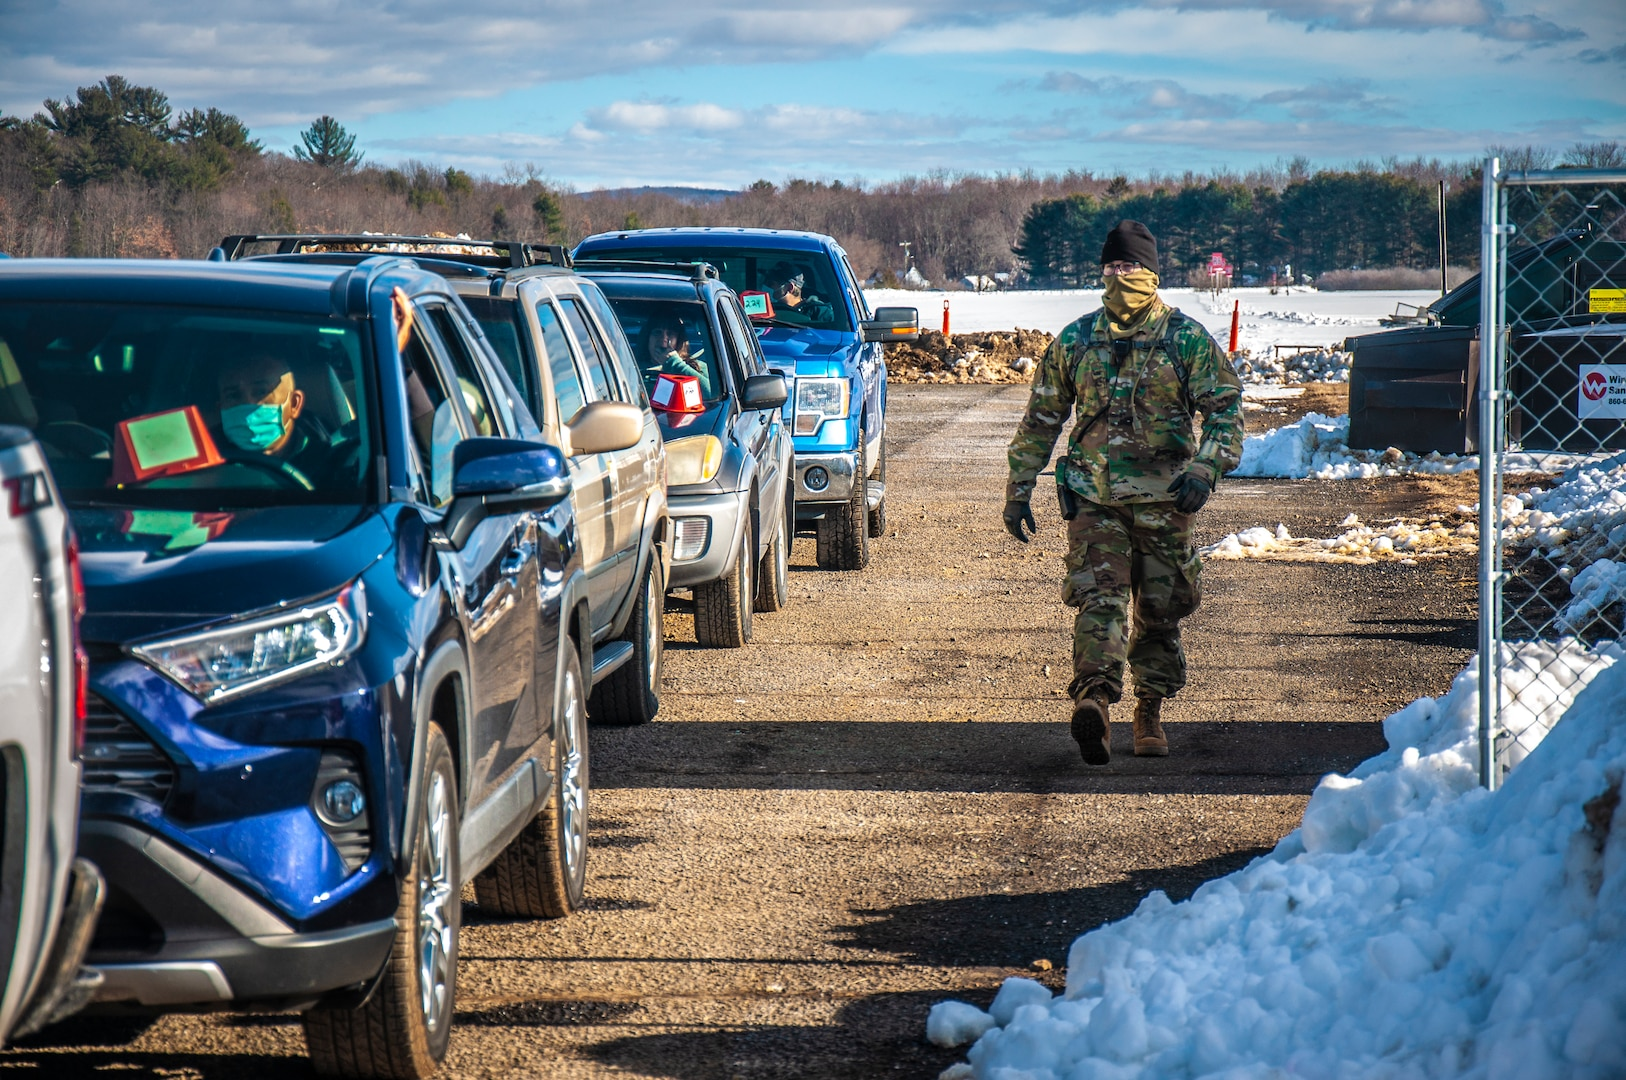 Staff Sgt. Ryan Gilbert, a combat engineer from the Connecticut National Guard's 192nd Engineer Battalion, walks down a line of cars to check on the passengers after receiving the COVID-19 vaccination at Rentschler Field in East Hartford, Jan. 4, 2021.